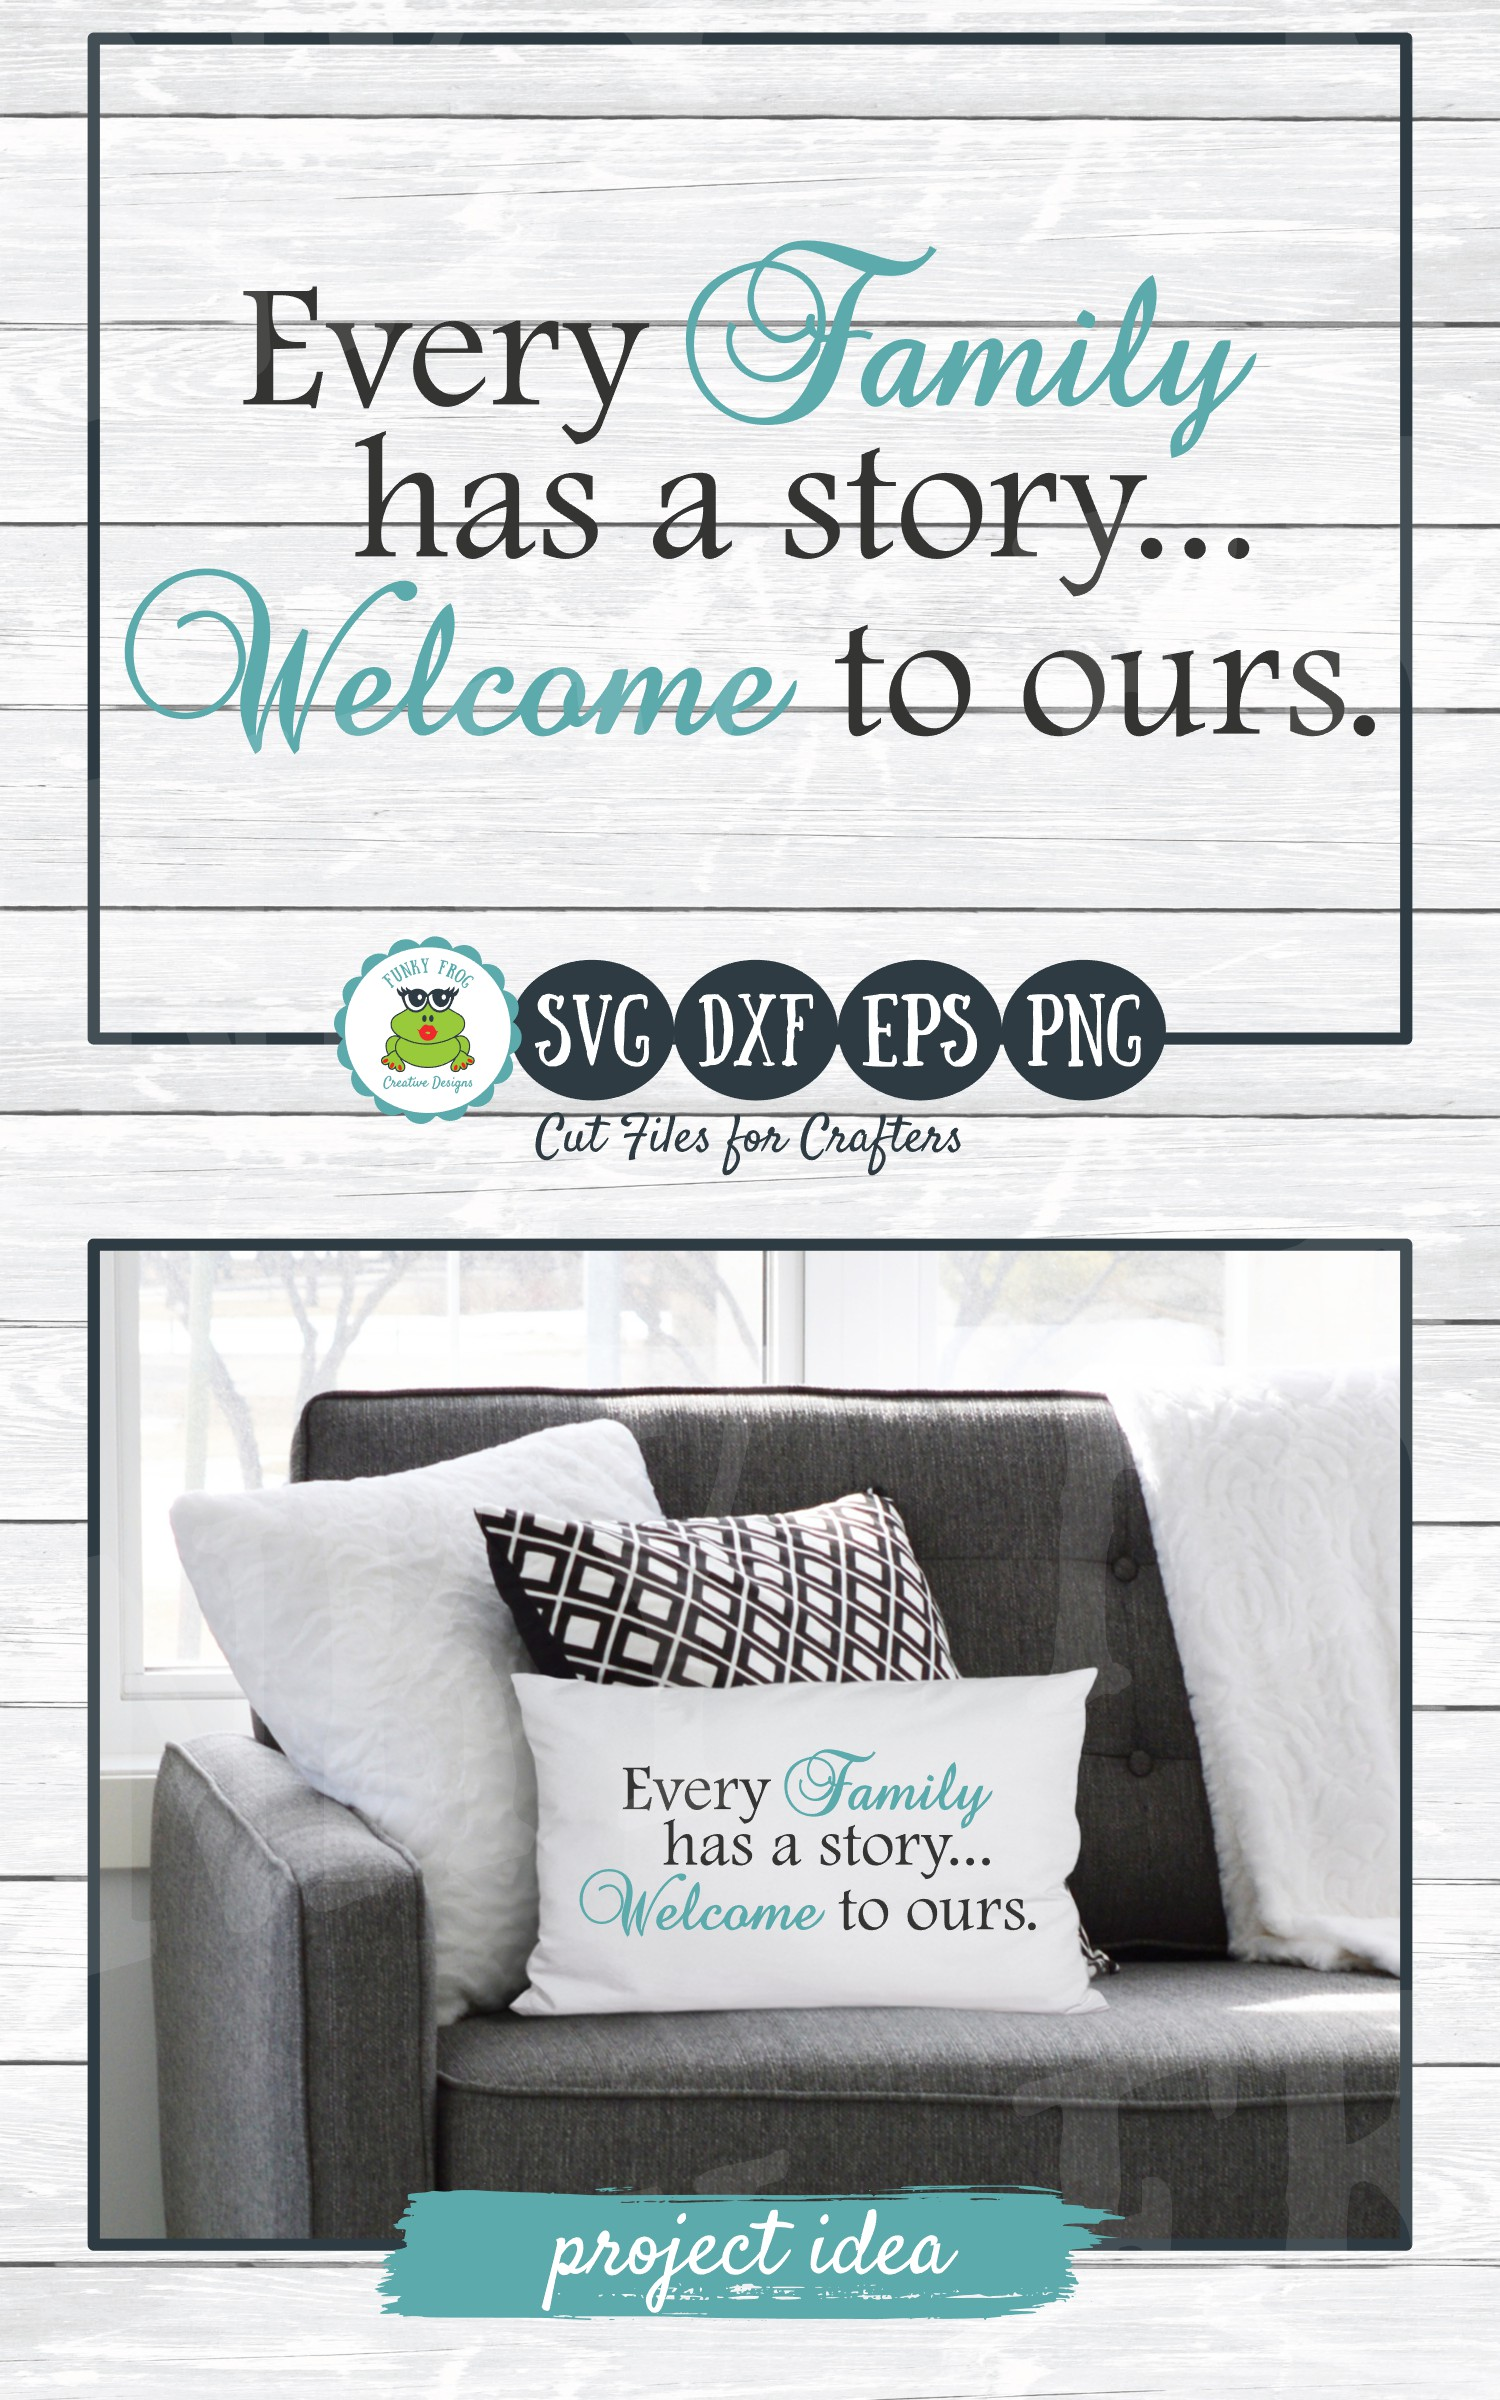 Every Family has a Story Welcome to Ours SVG Cut File example image 3